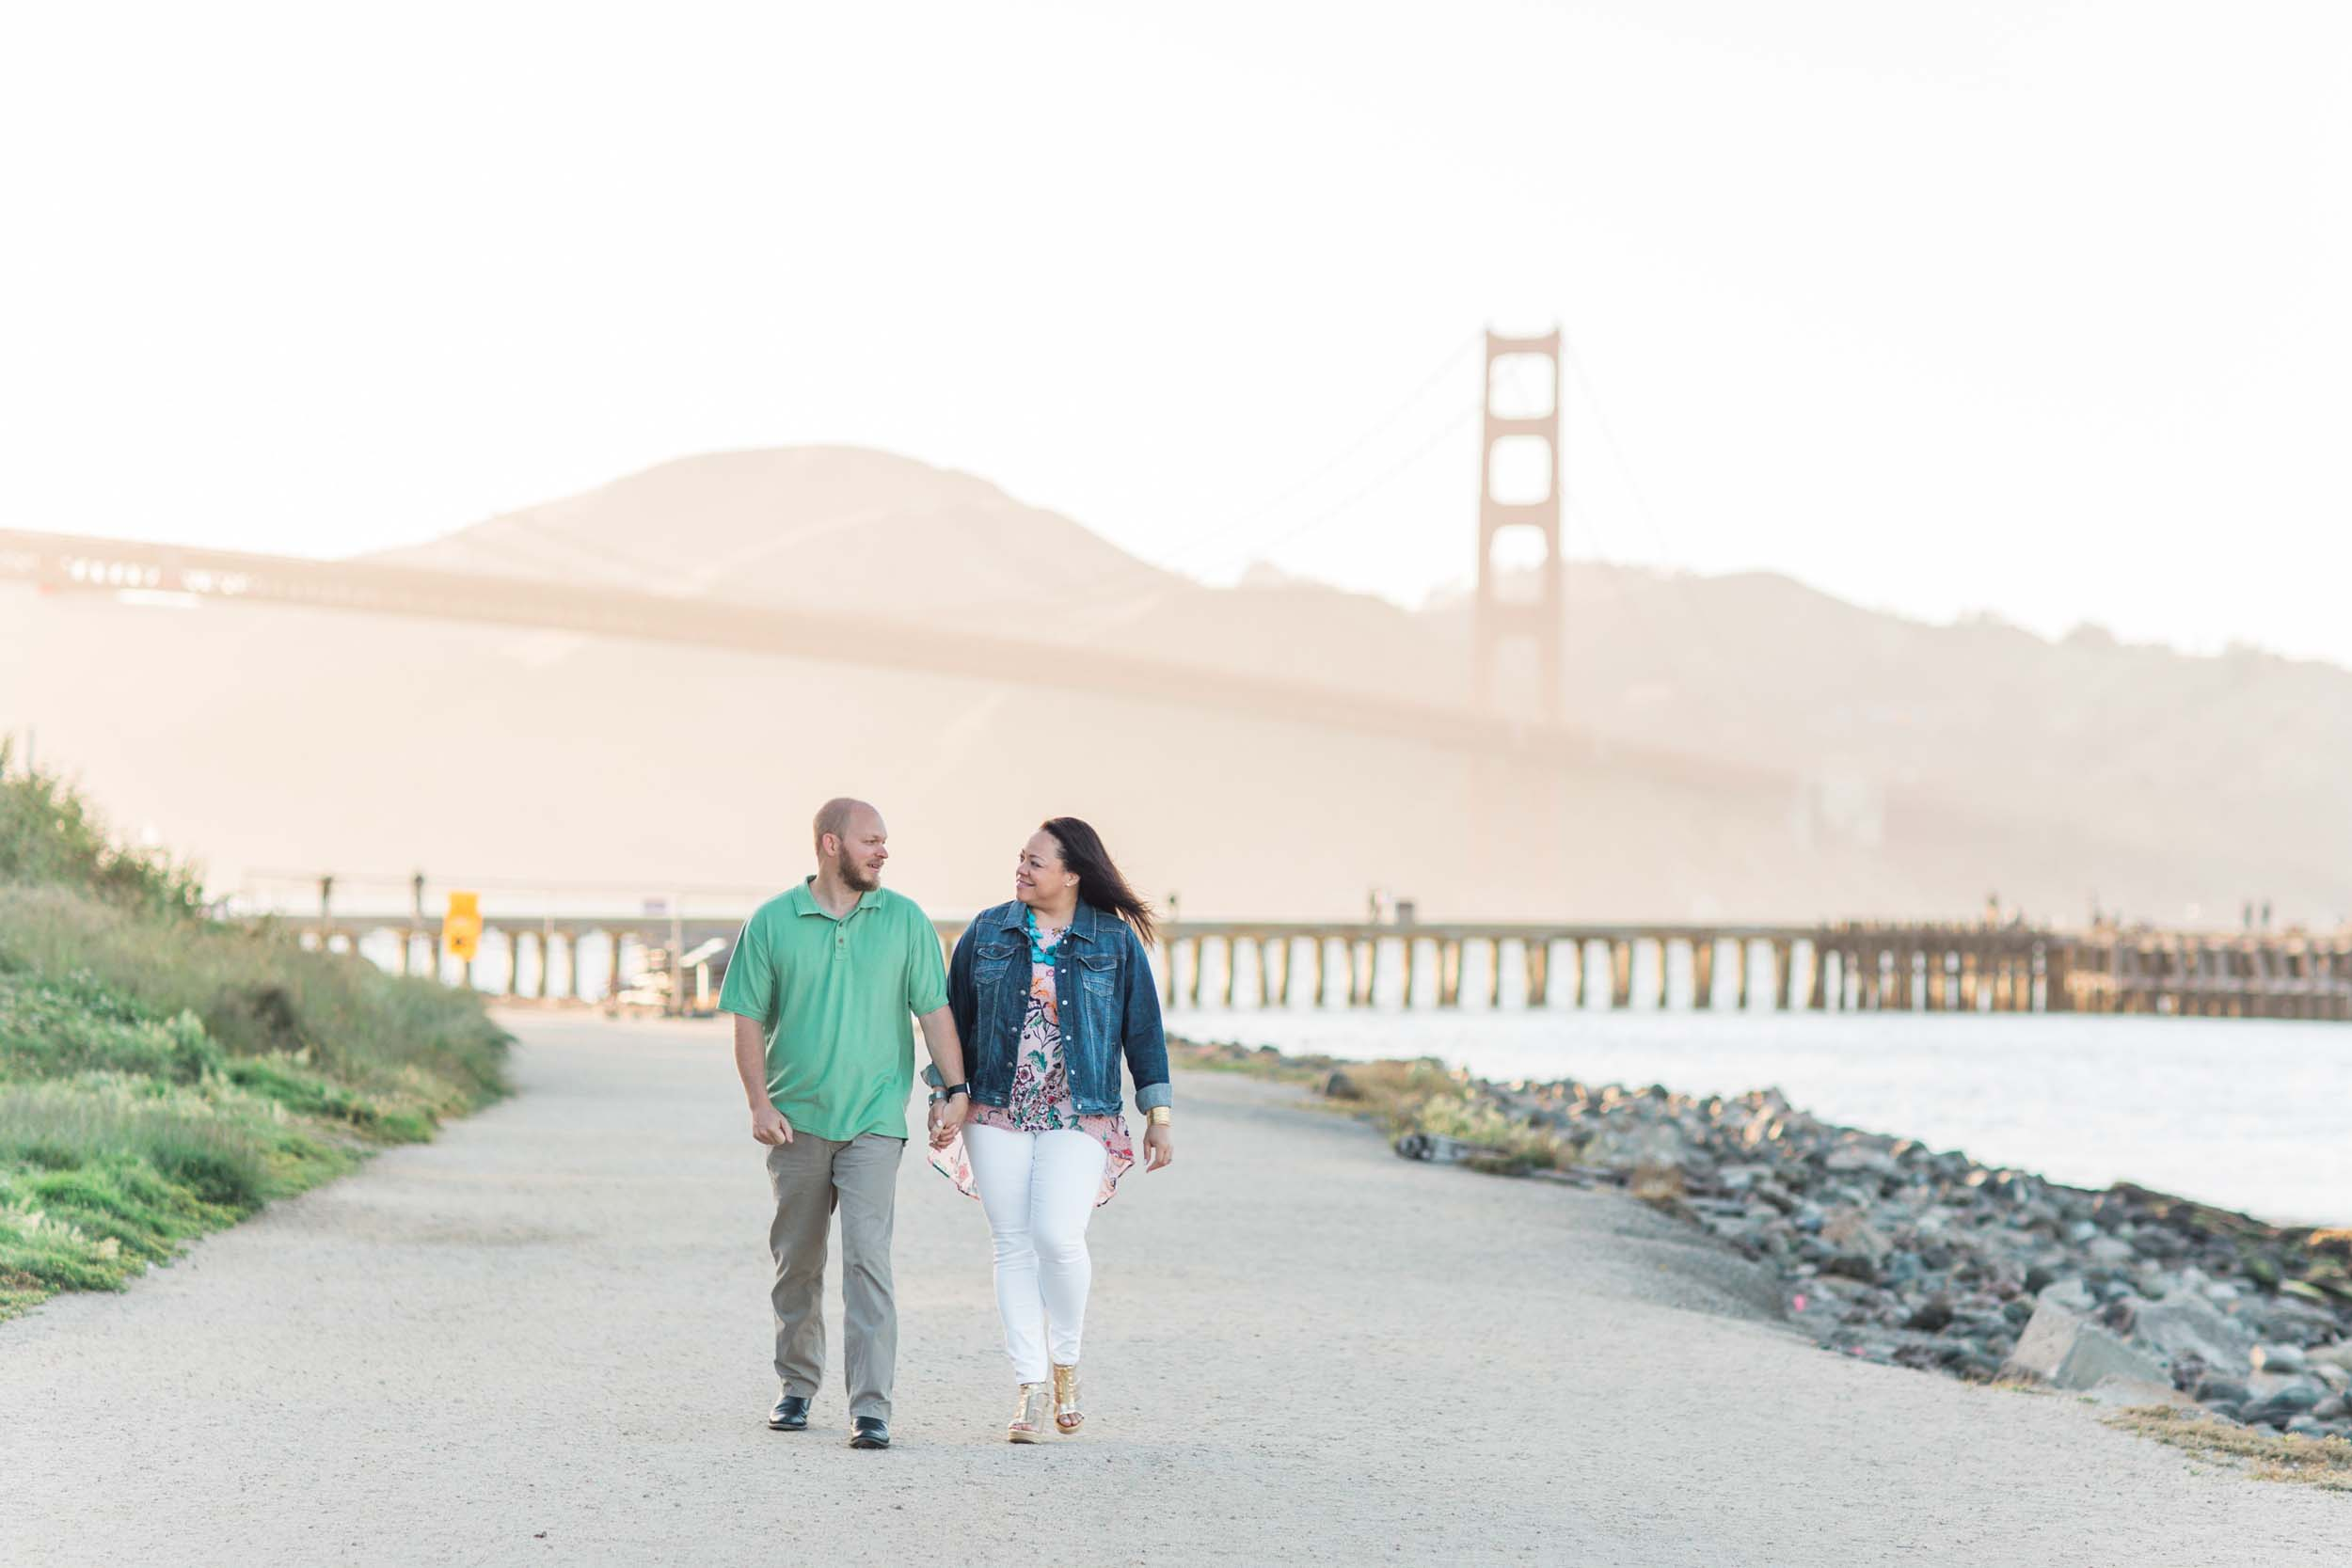 A couple walks along a waterfront path in San Francisco with the Golden Gate Bridge in the background.